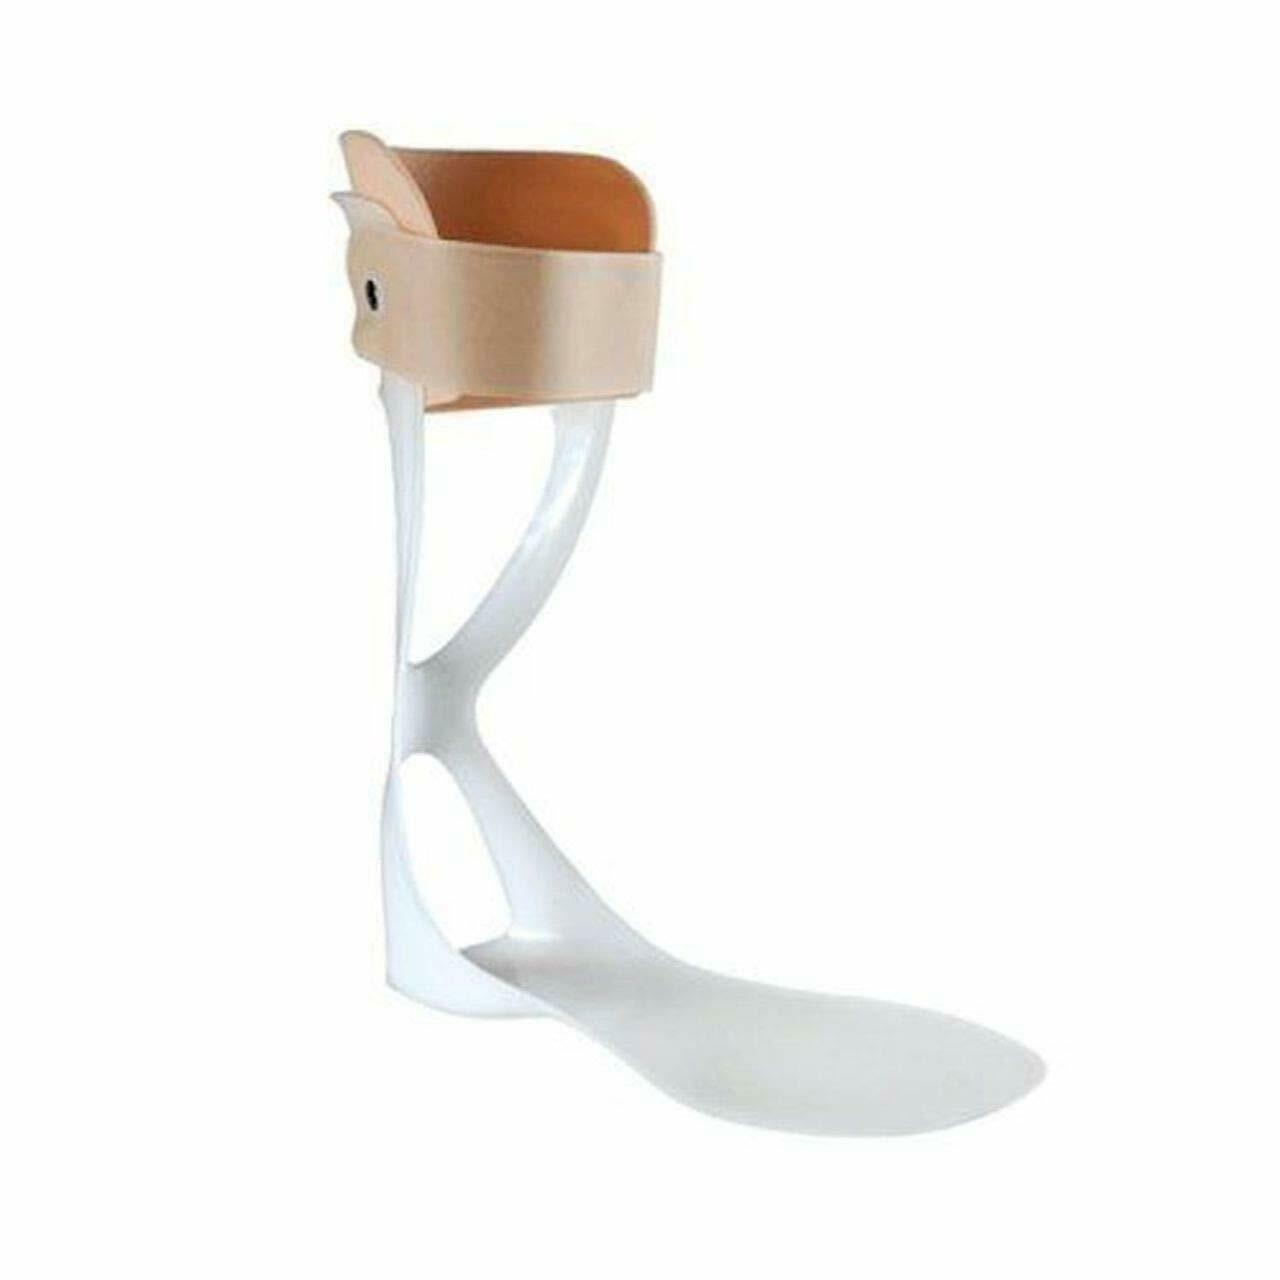 Ossur AFO Leaf Spring-Support flaccid Drop Foot-Provides good toe clearance